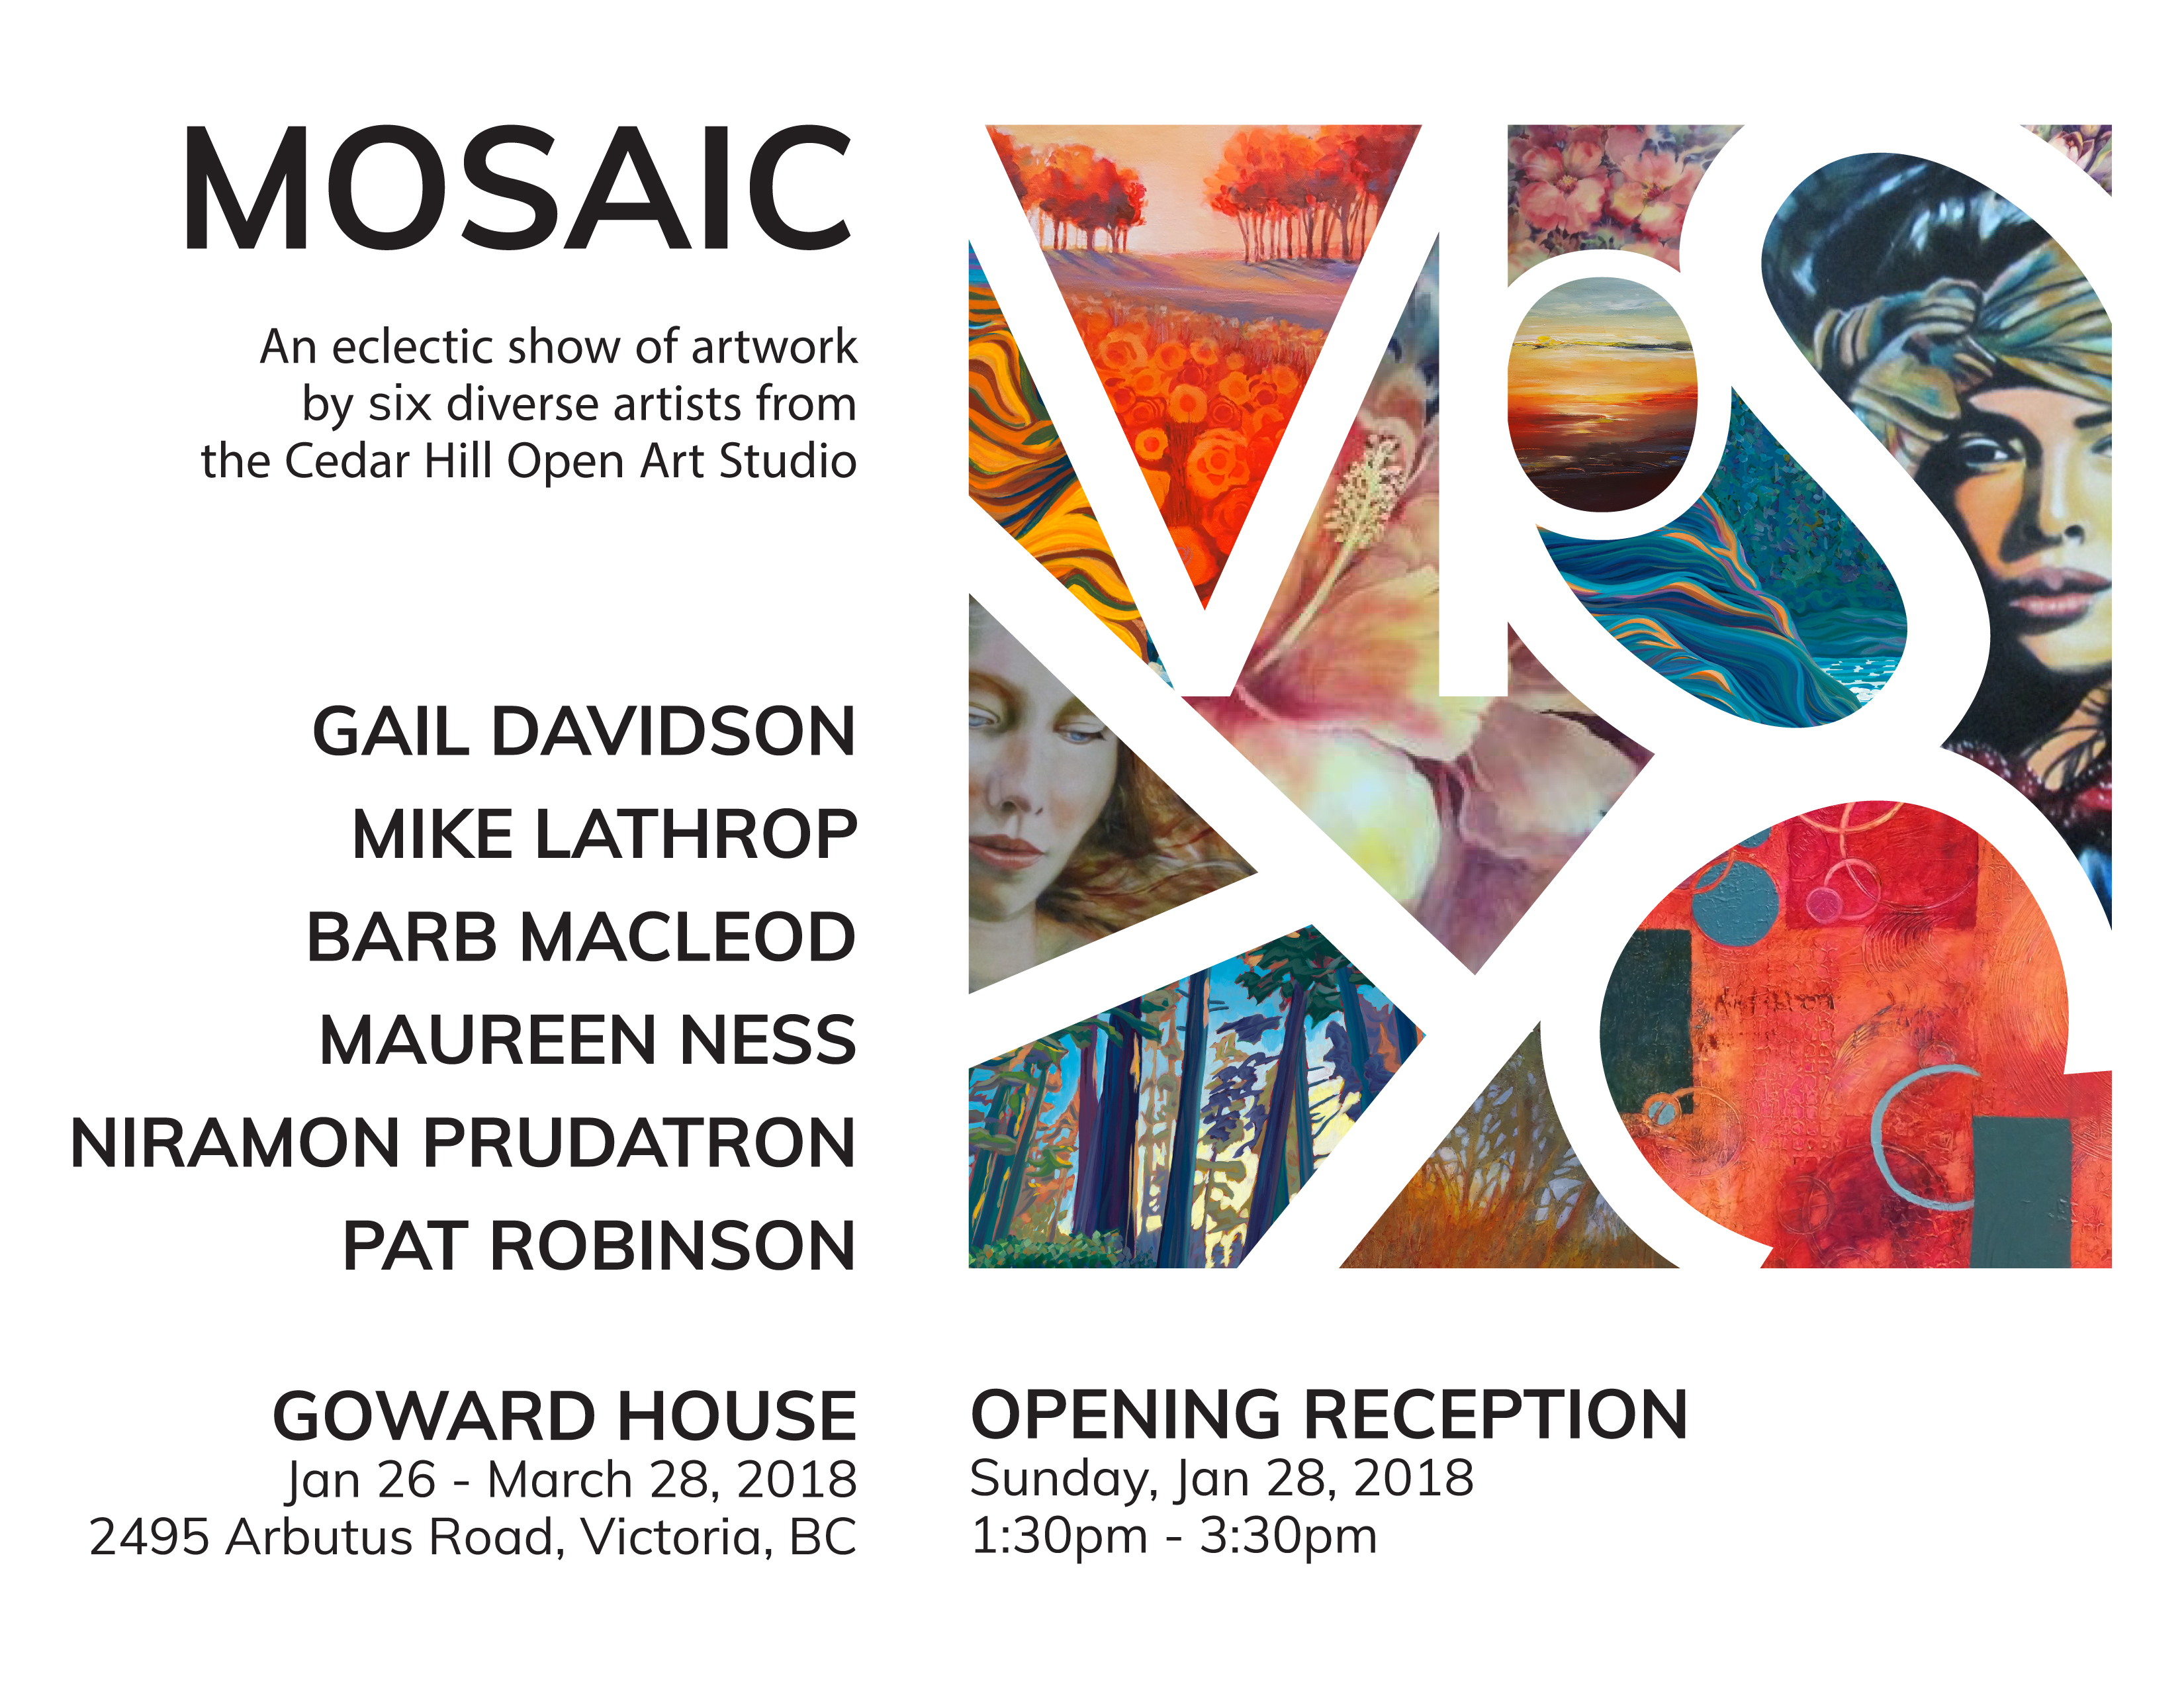 Mosaic Art Show at Goward House – The Feeling of the Place